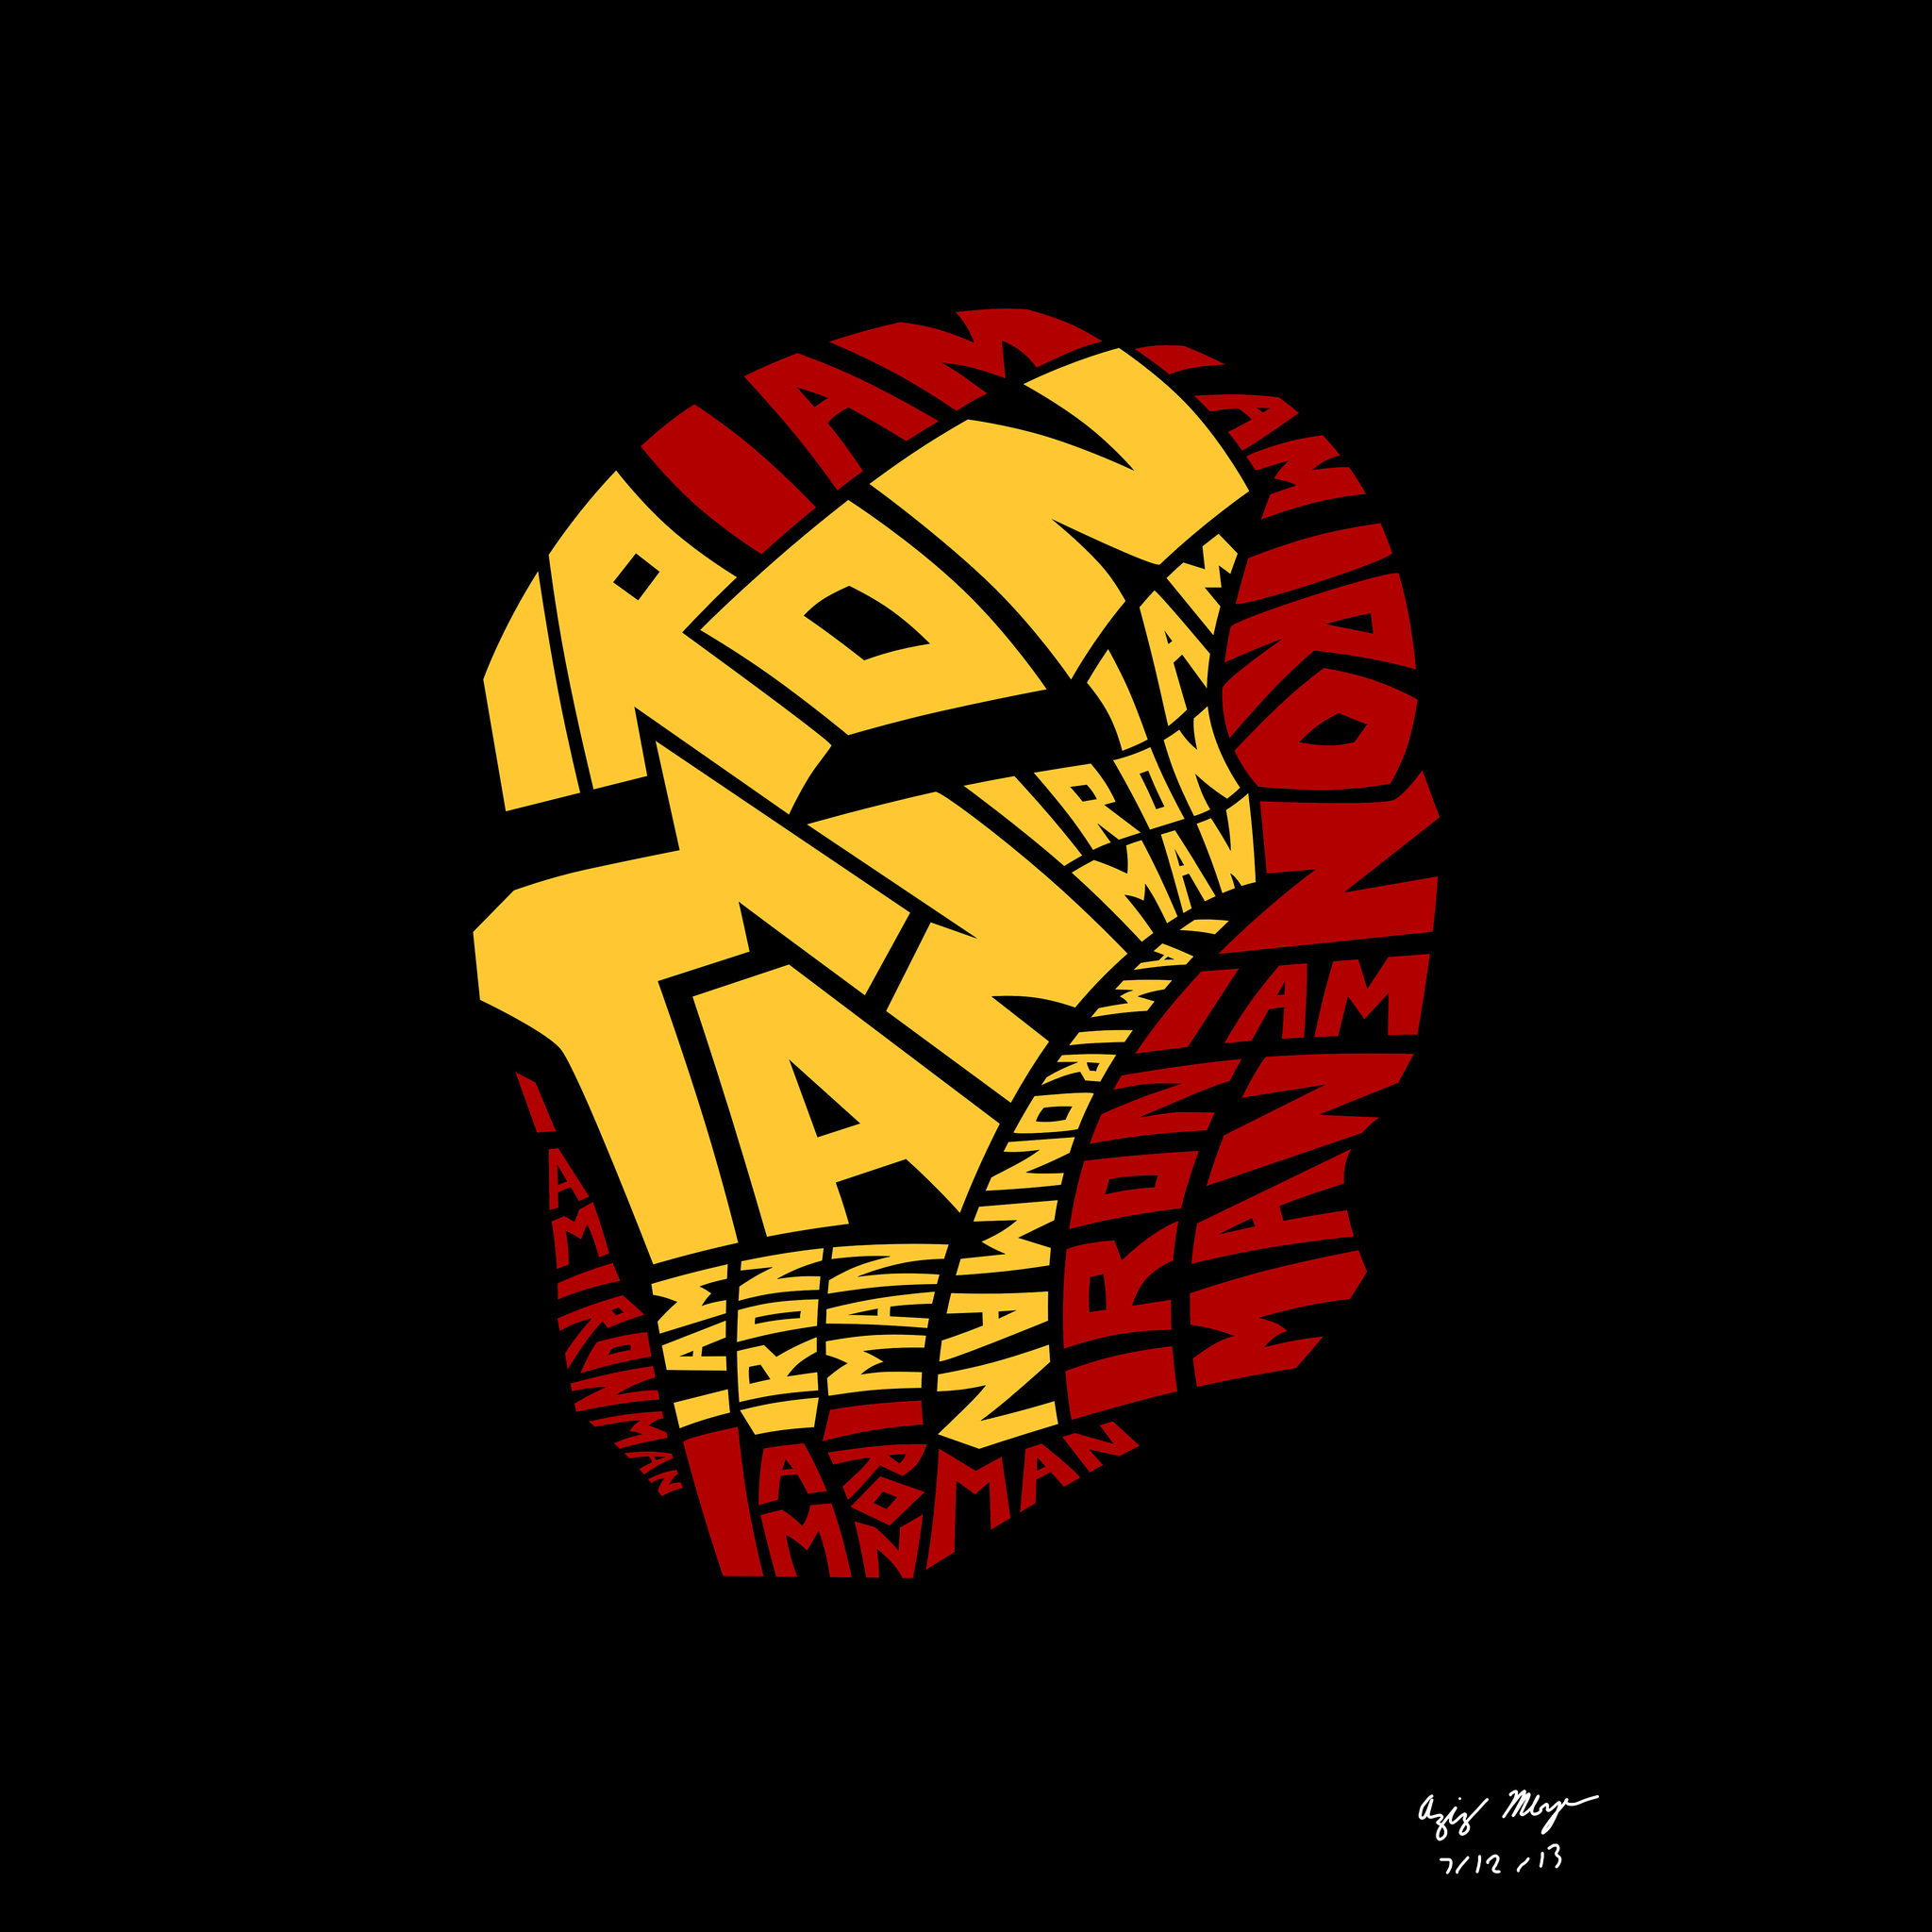 iron-man-typography-artwork-8k-qj.jpg